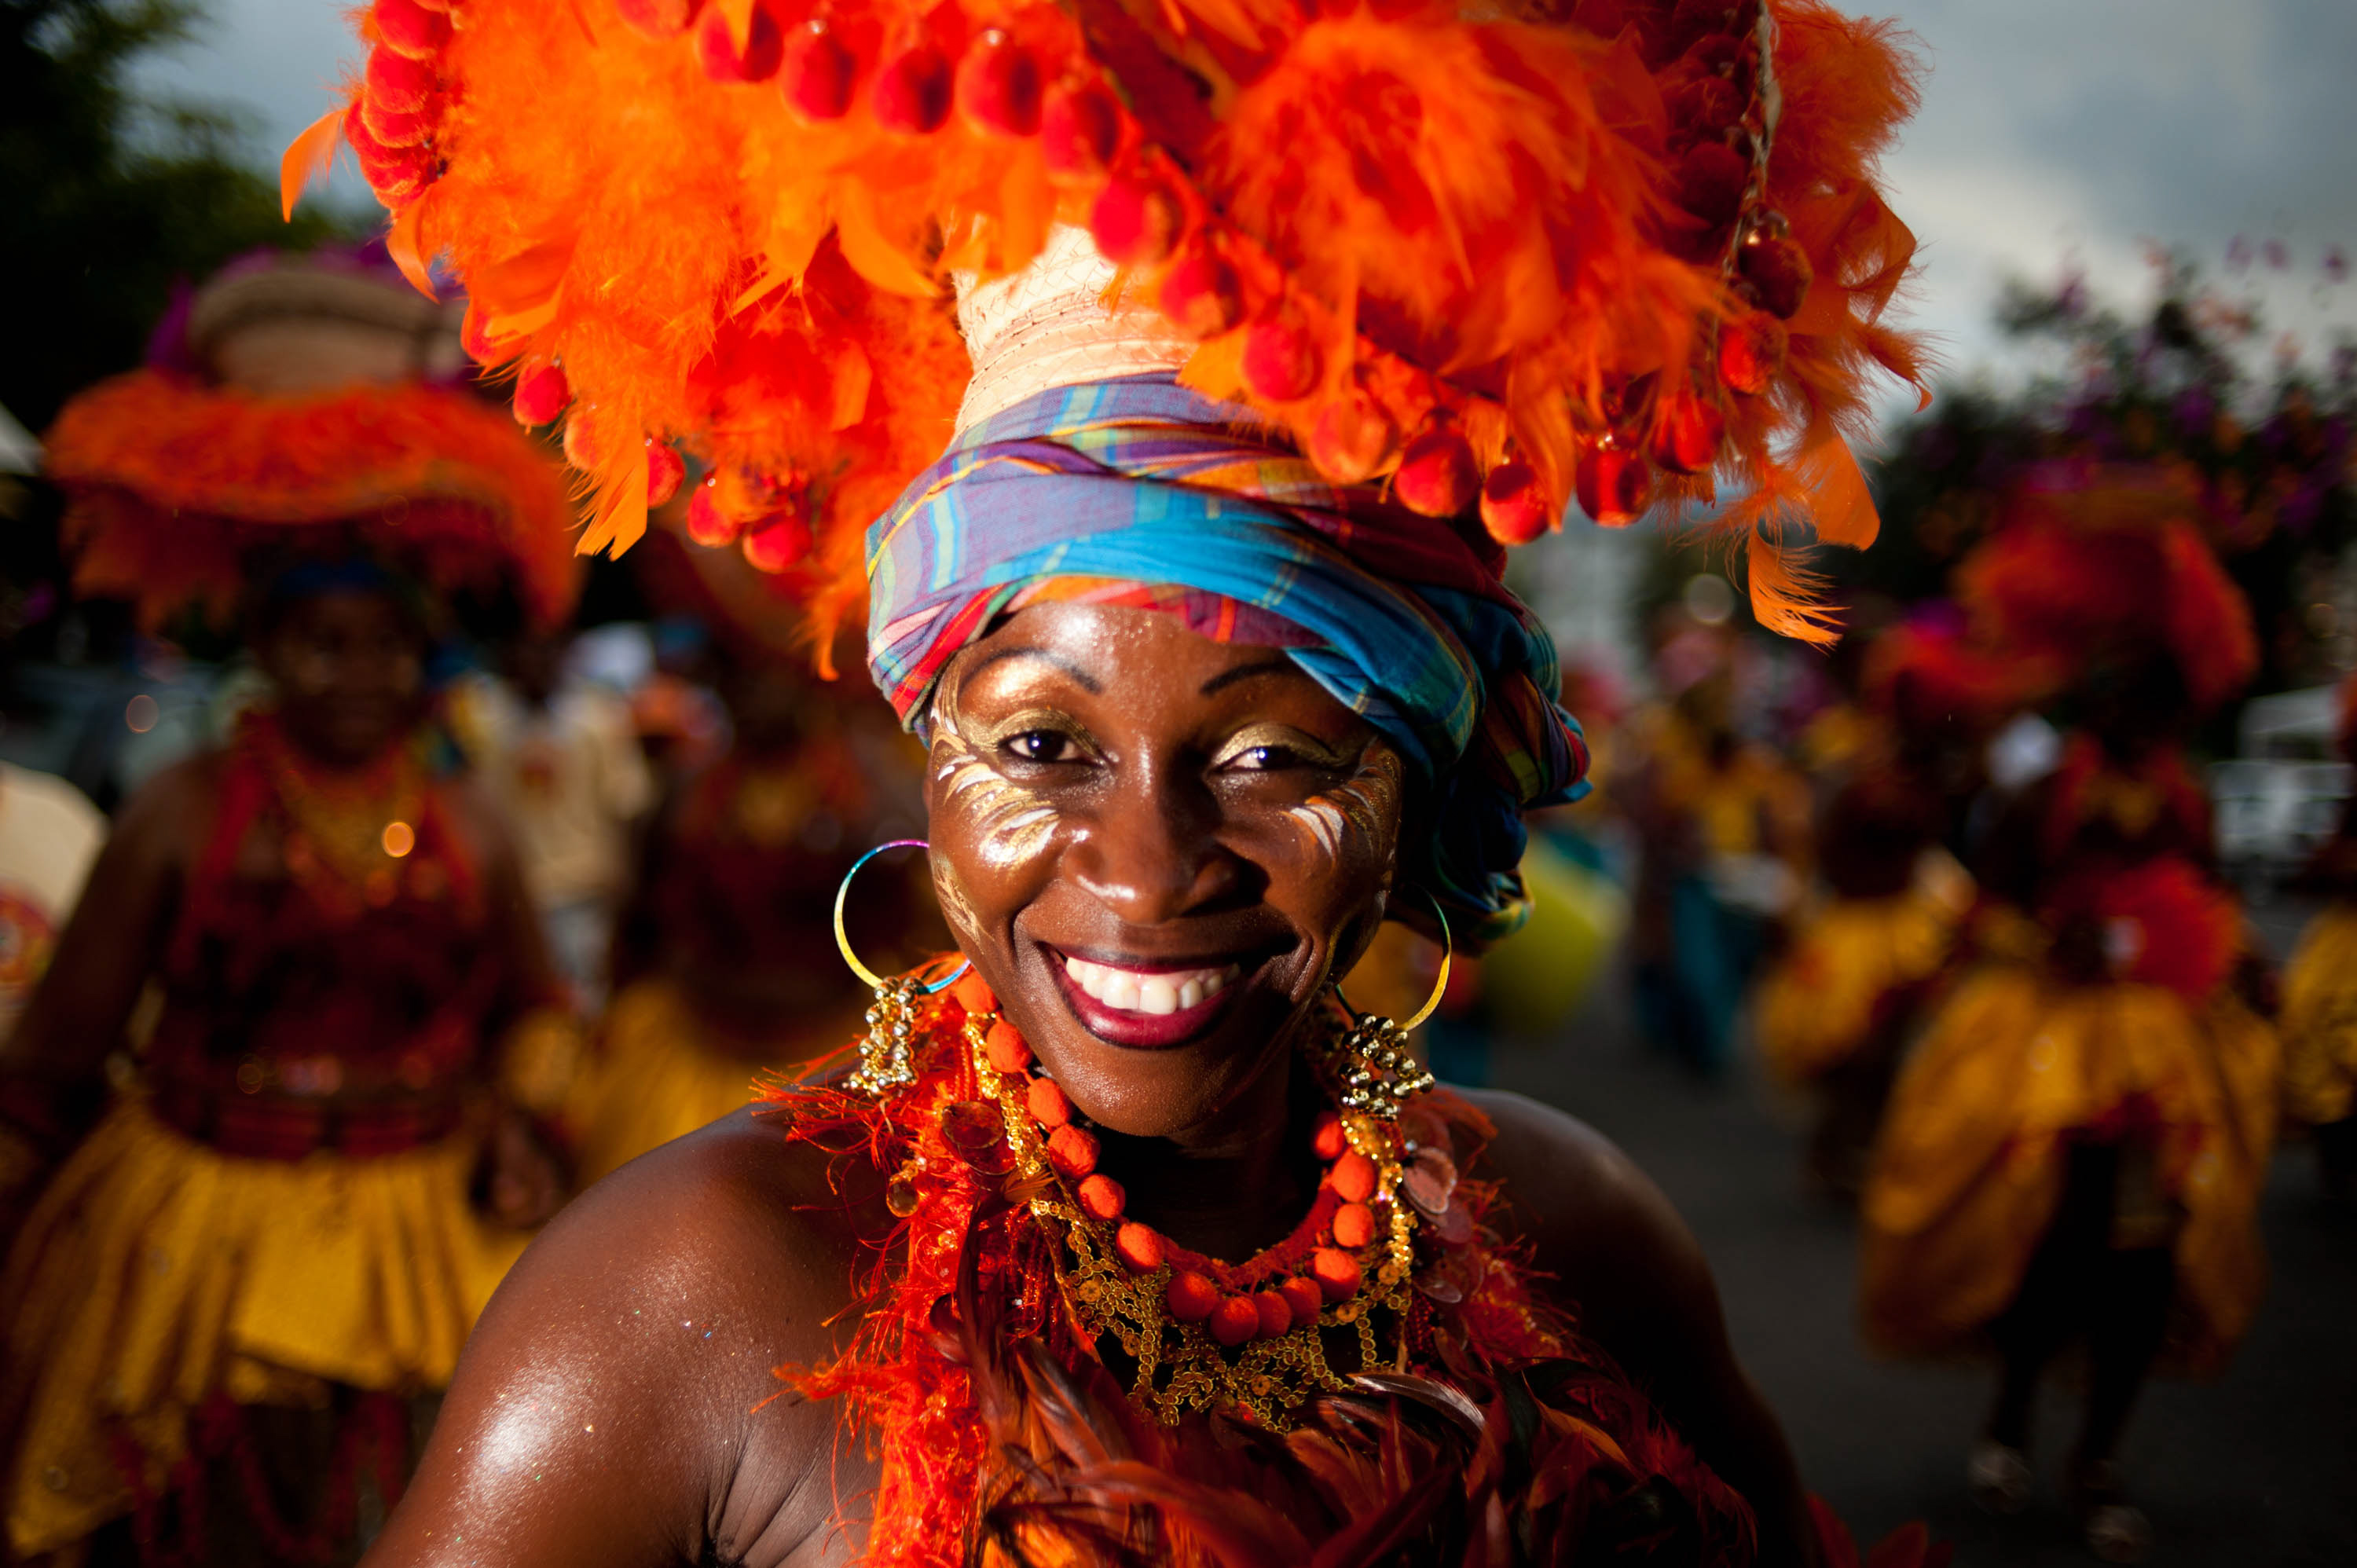 TRIP DOWN MEMORY LANE: GUADELOUPE: AFRICAN DESCENDANTS IN